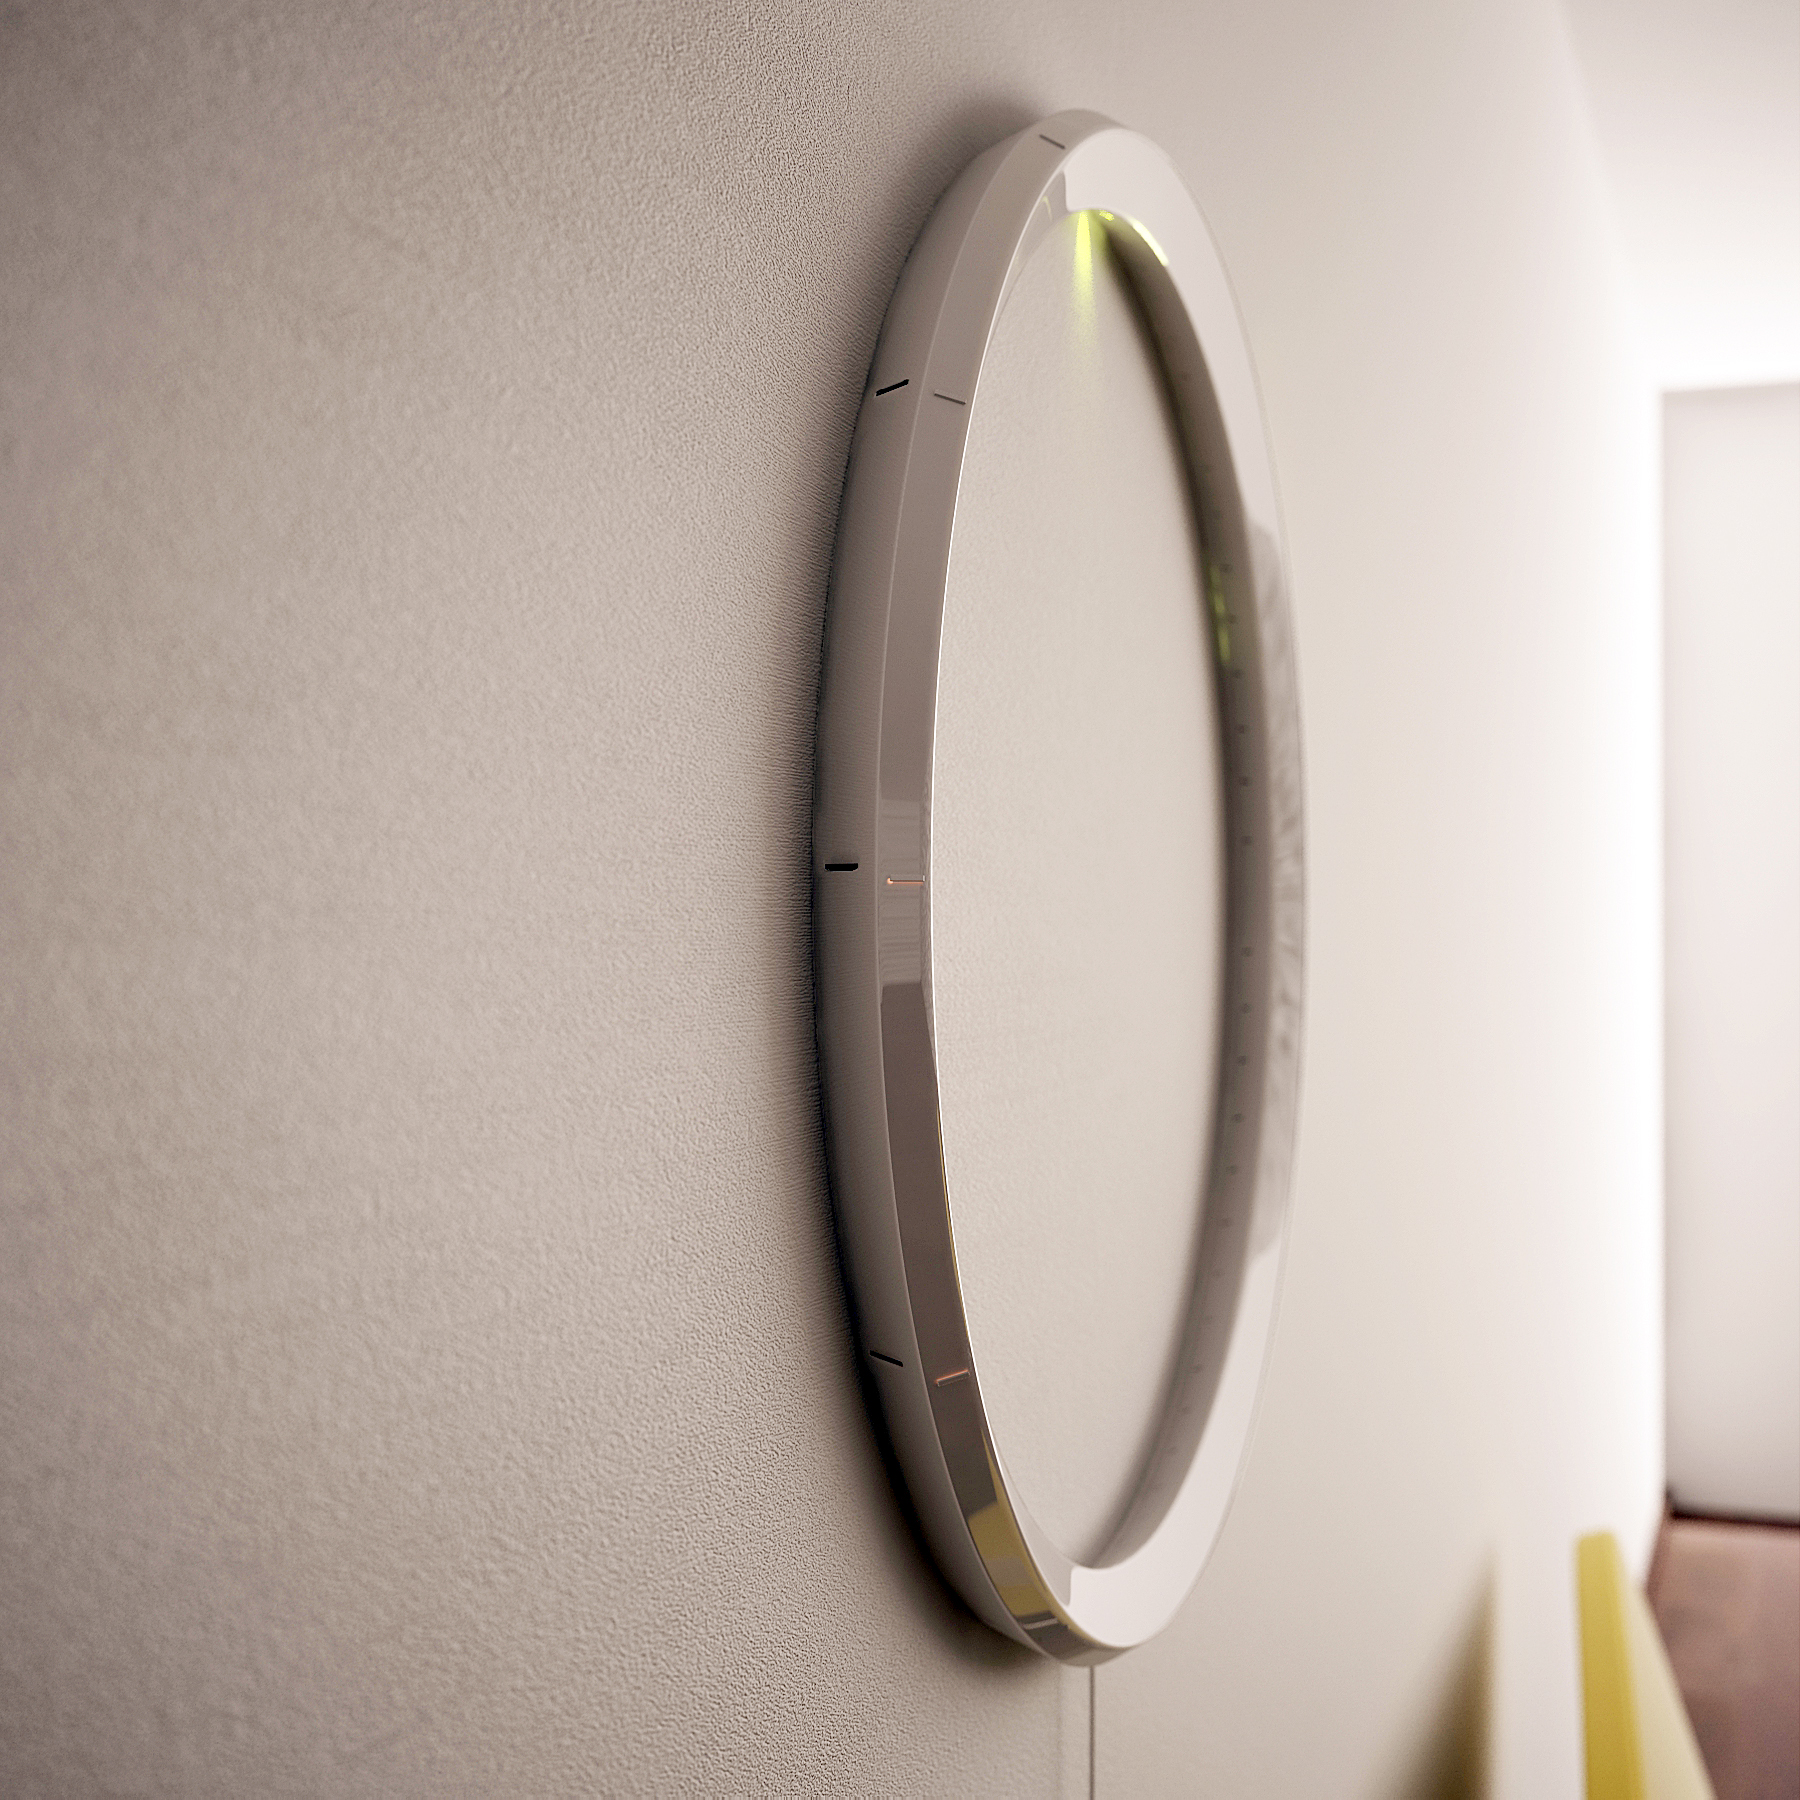 Circuit wall clock on behance circuit wall clock on behance amipublicfo Image collections